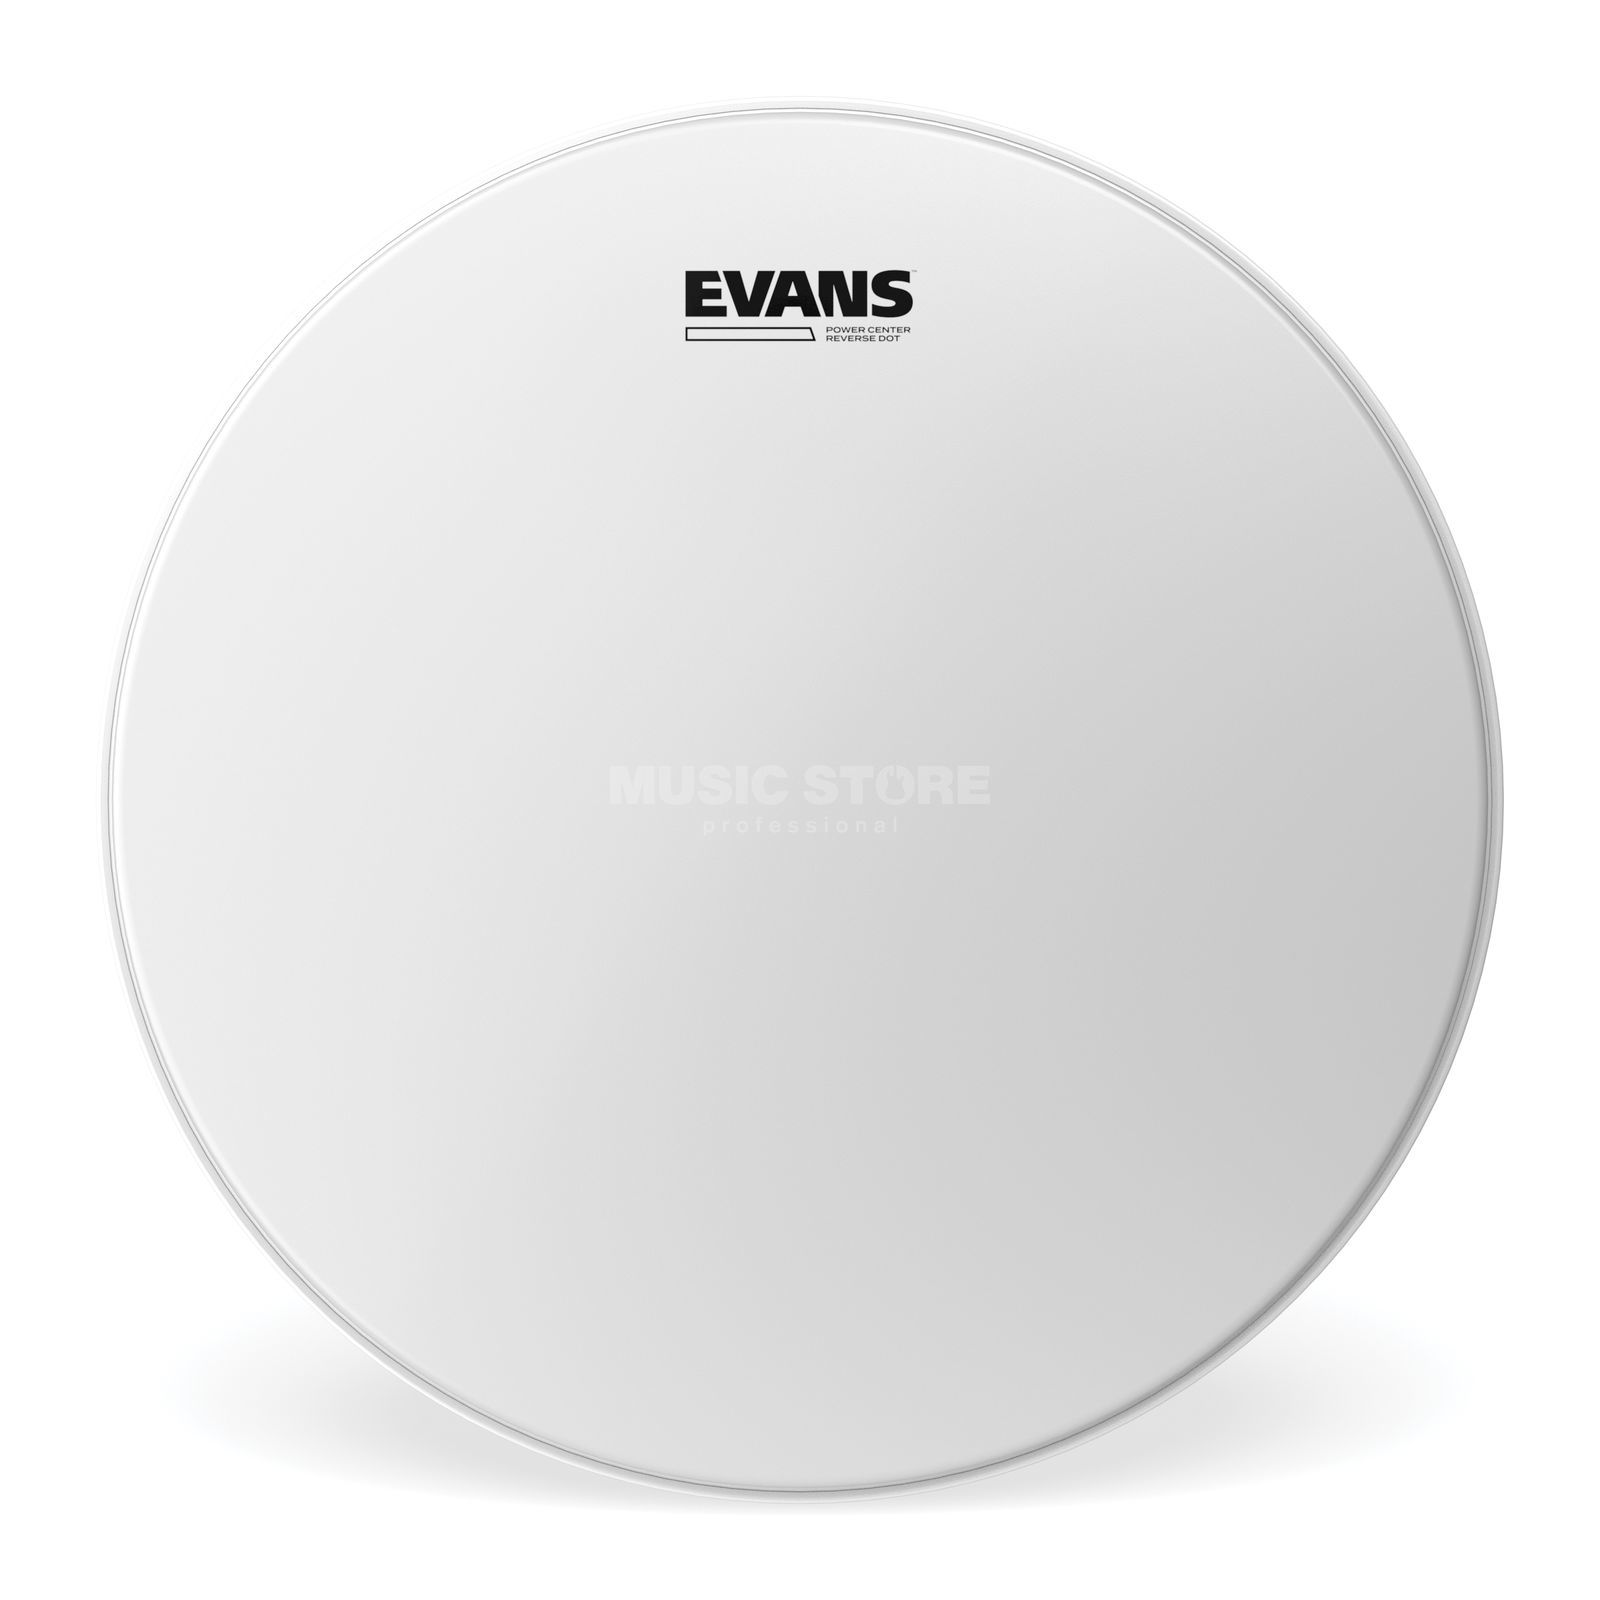 "Evans Power Center 14"", B14G1RD, Reverse Dot, Snare Batter Immagine prodotto"